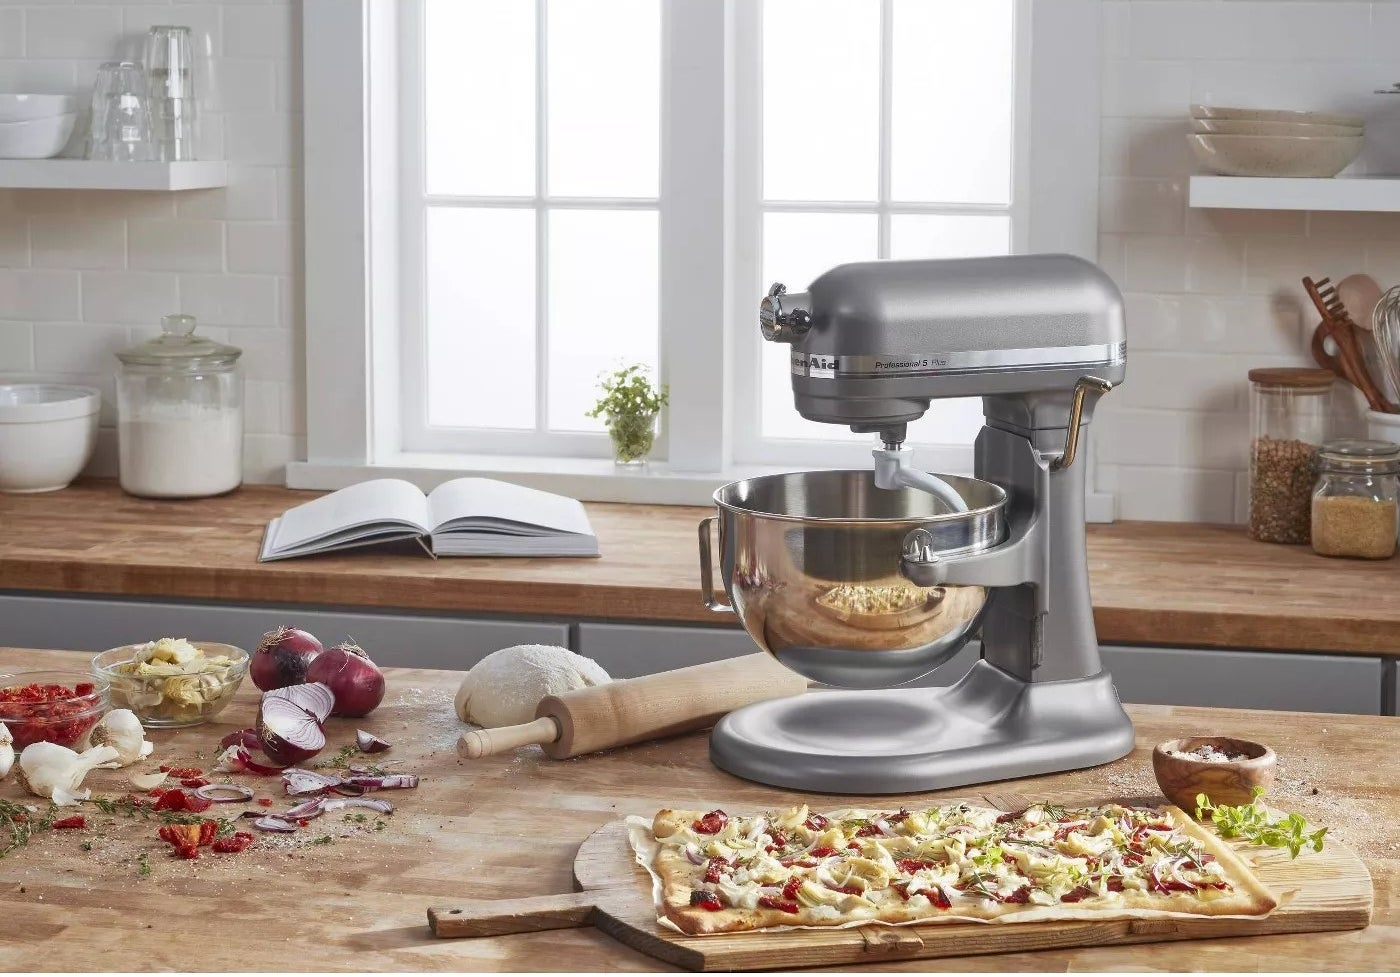 The mixer on a kitchen counter mixing dough